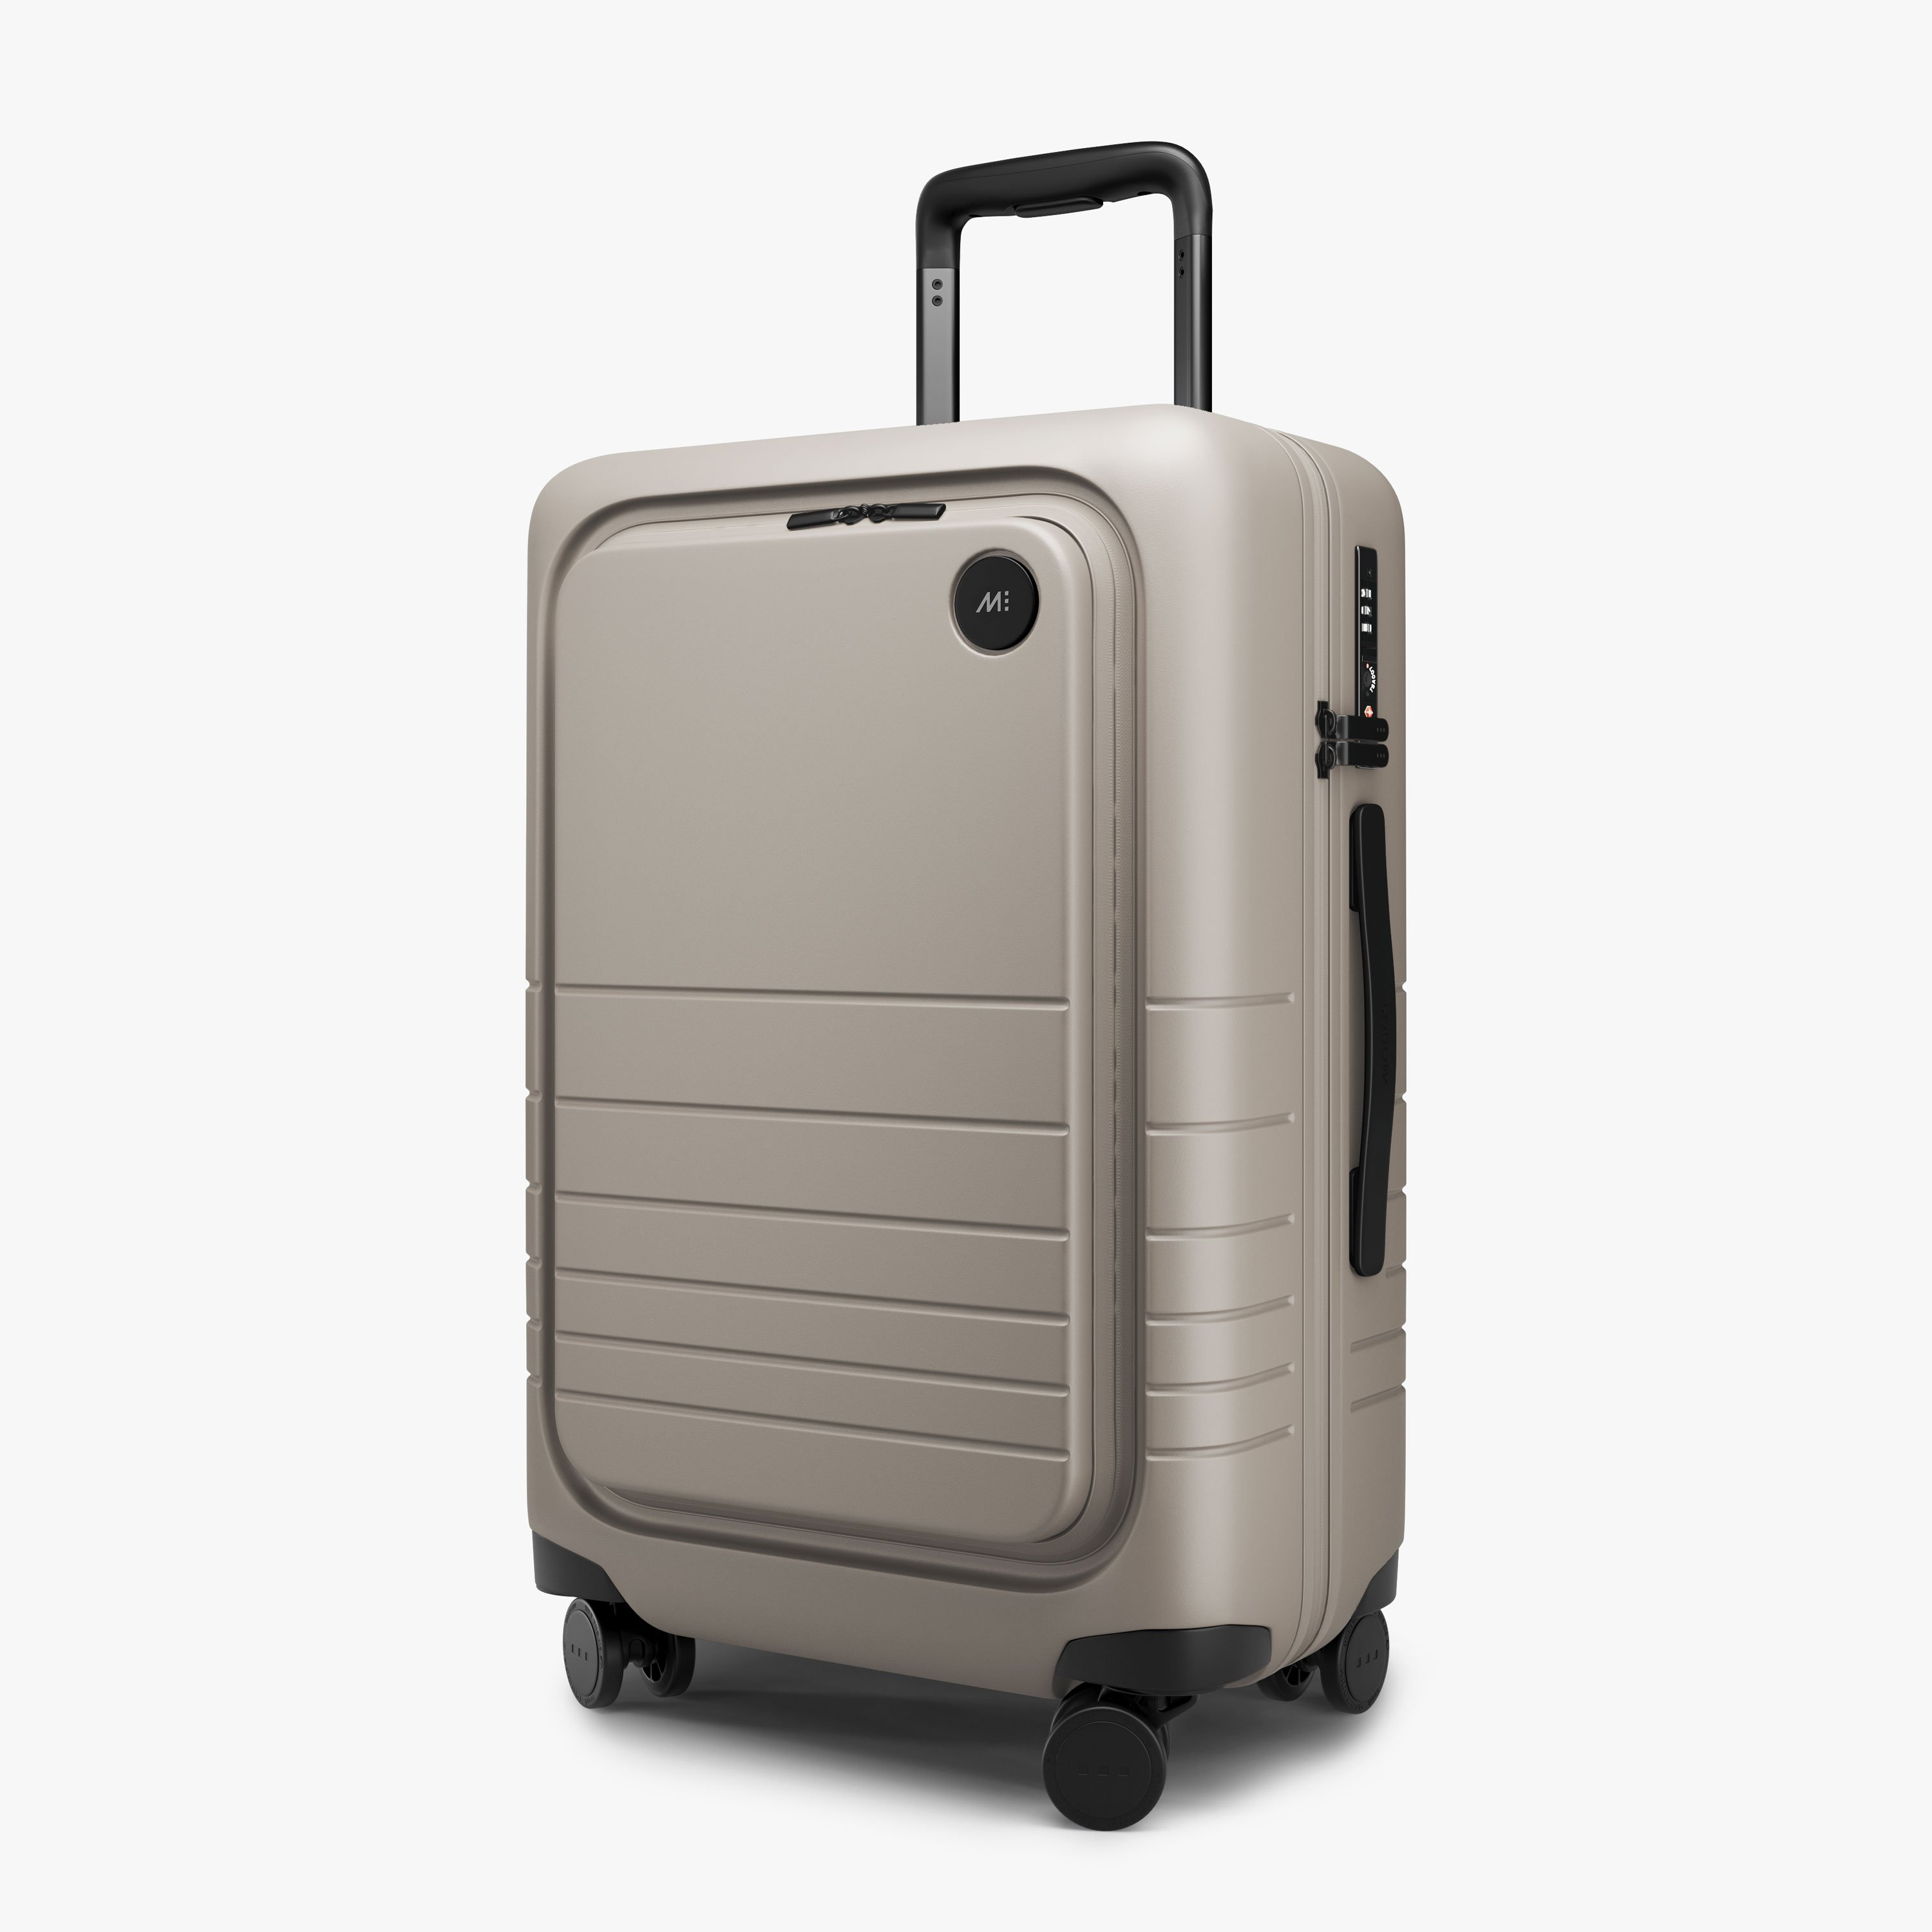 Best Places to Buy Luggage Online - Monos